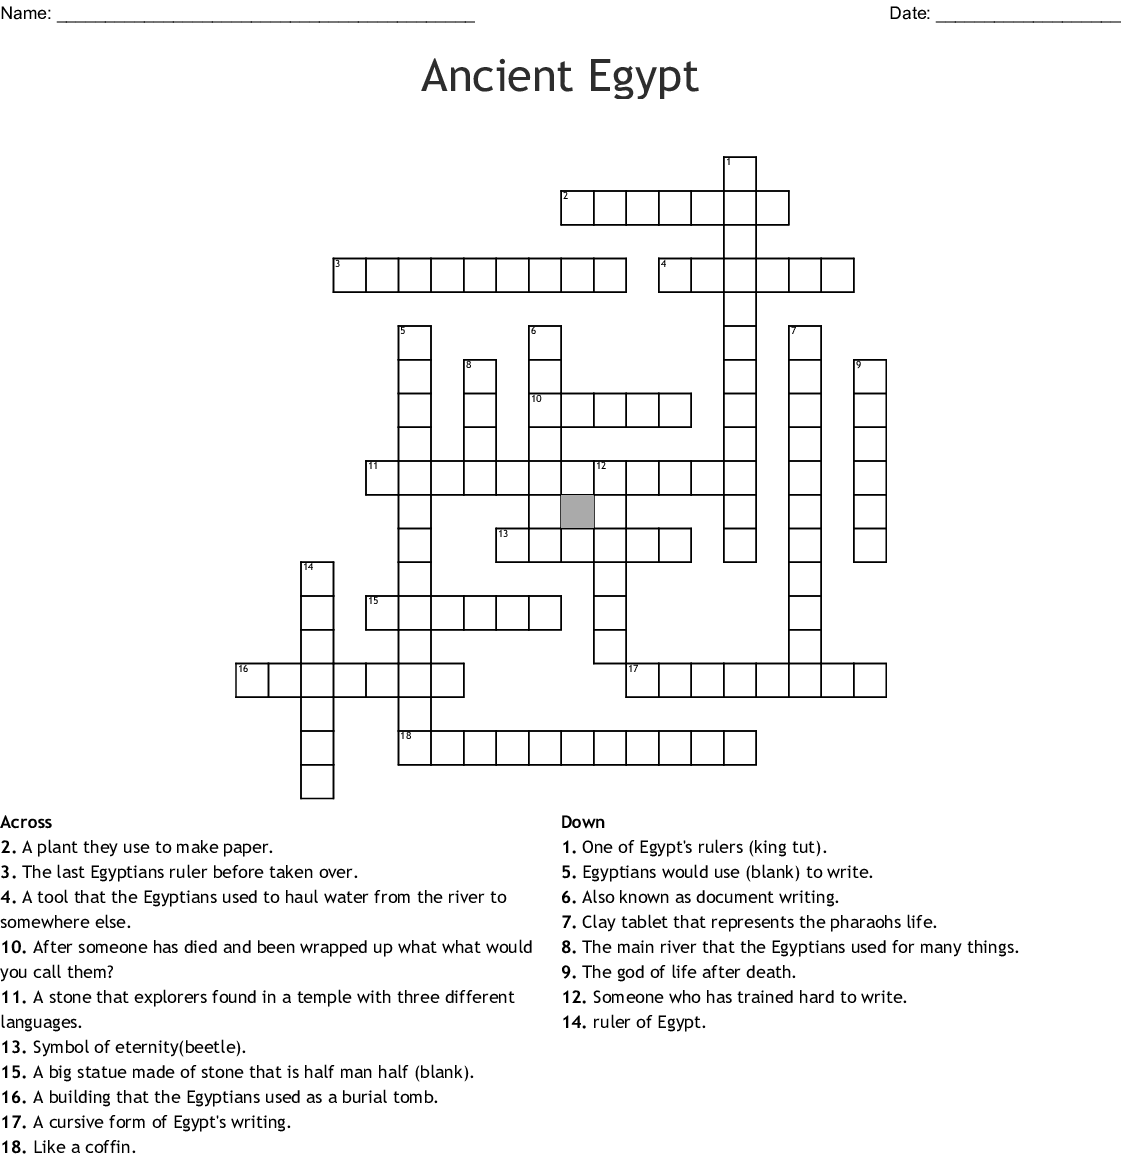 Ancient Egypt Crossword Puzzle - WordMint